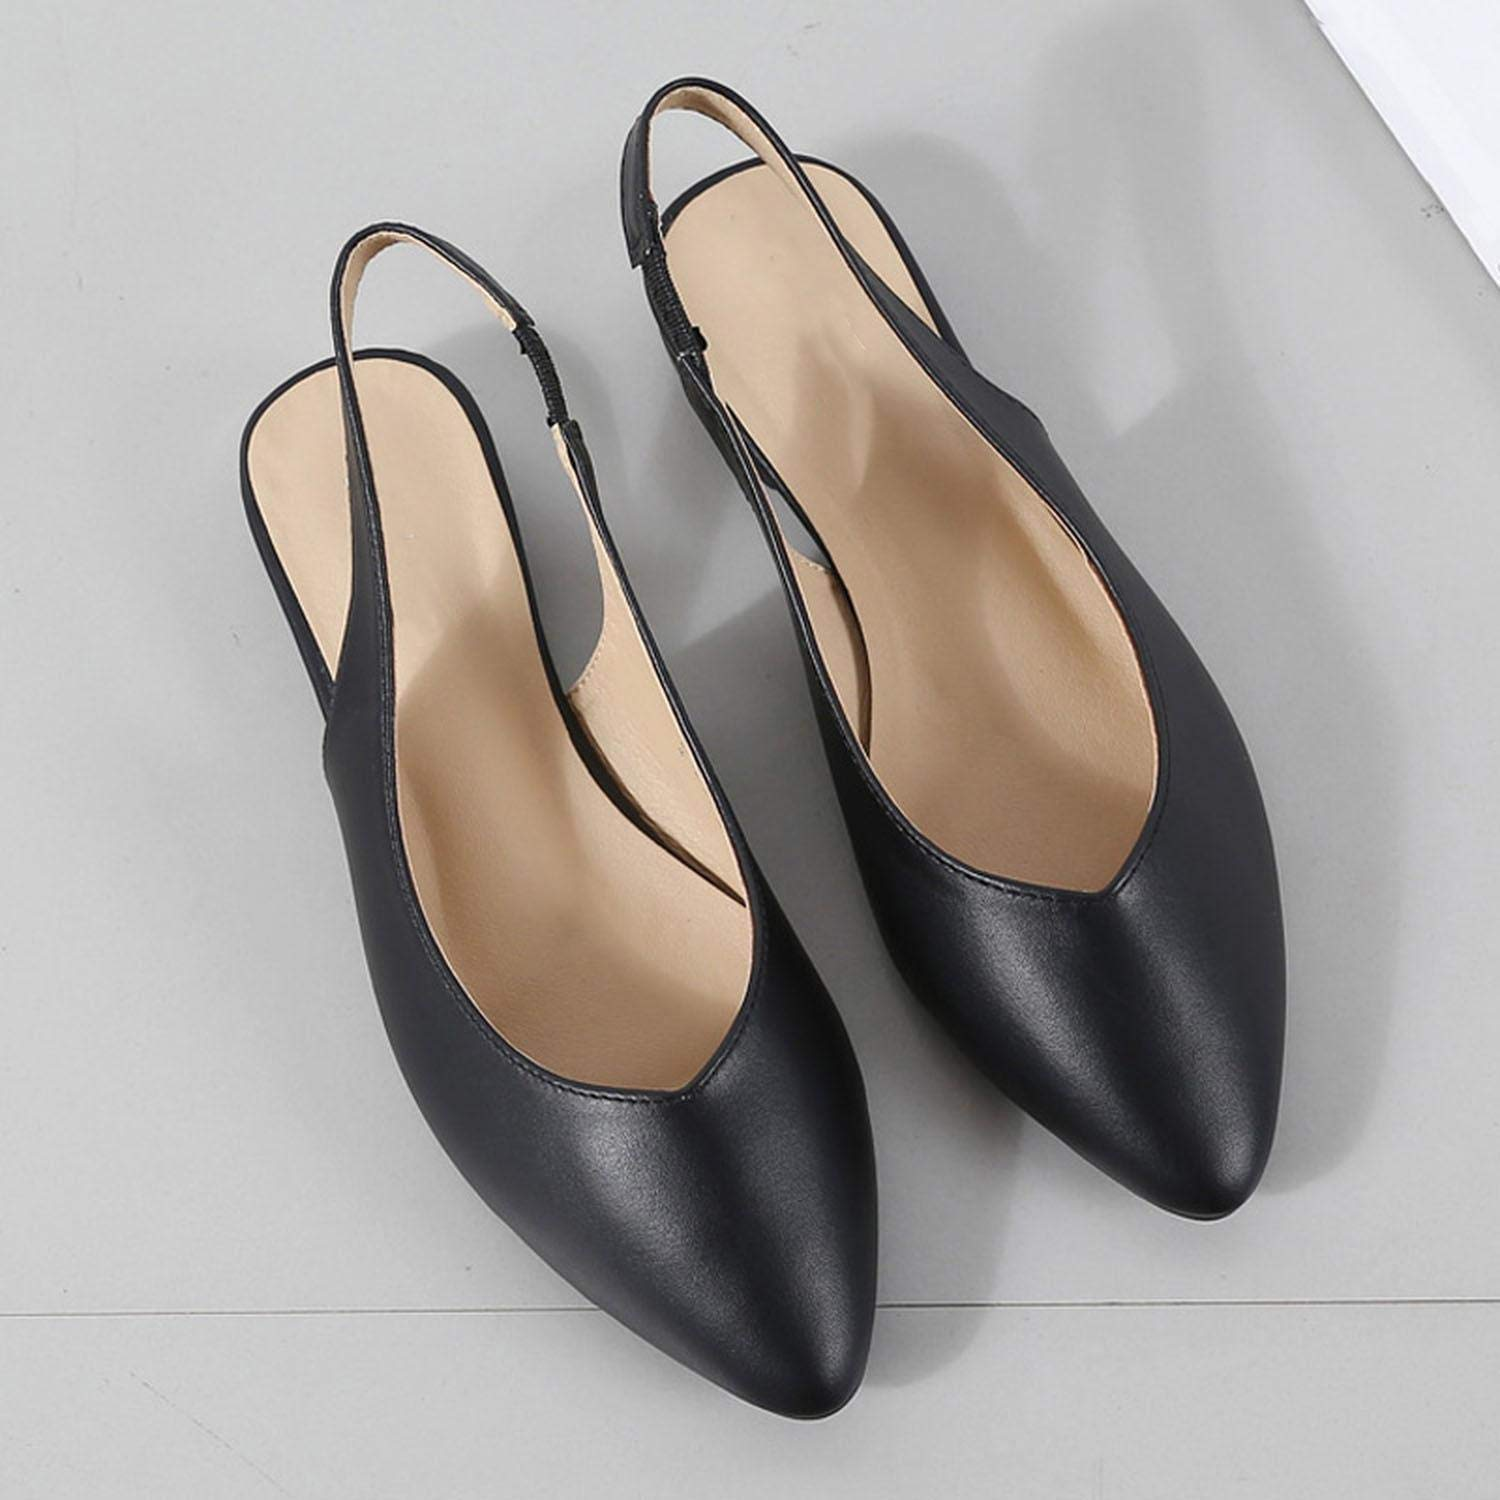 Axd-Home Shallow Mouth Low Sandals Woman Clear Heels Black Shoes